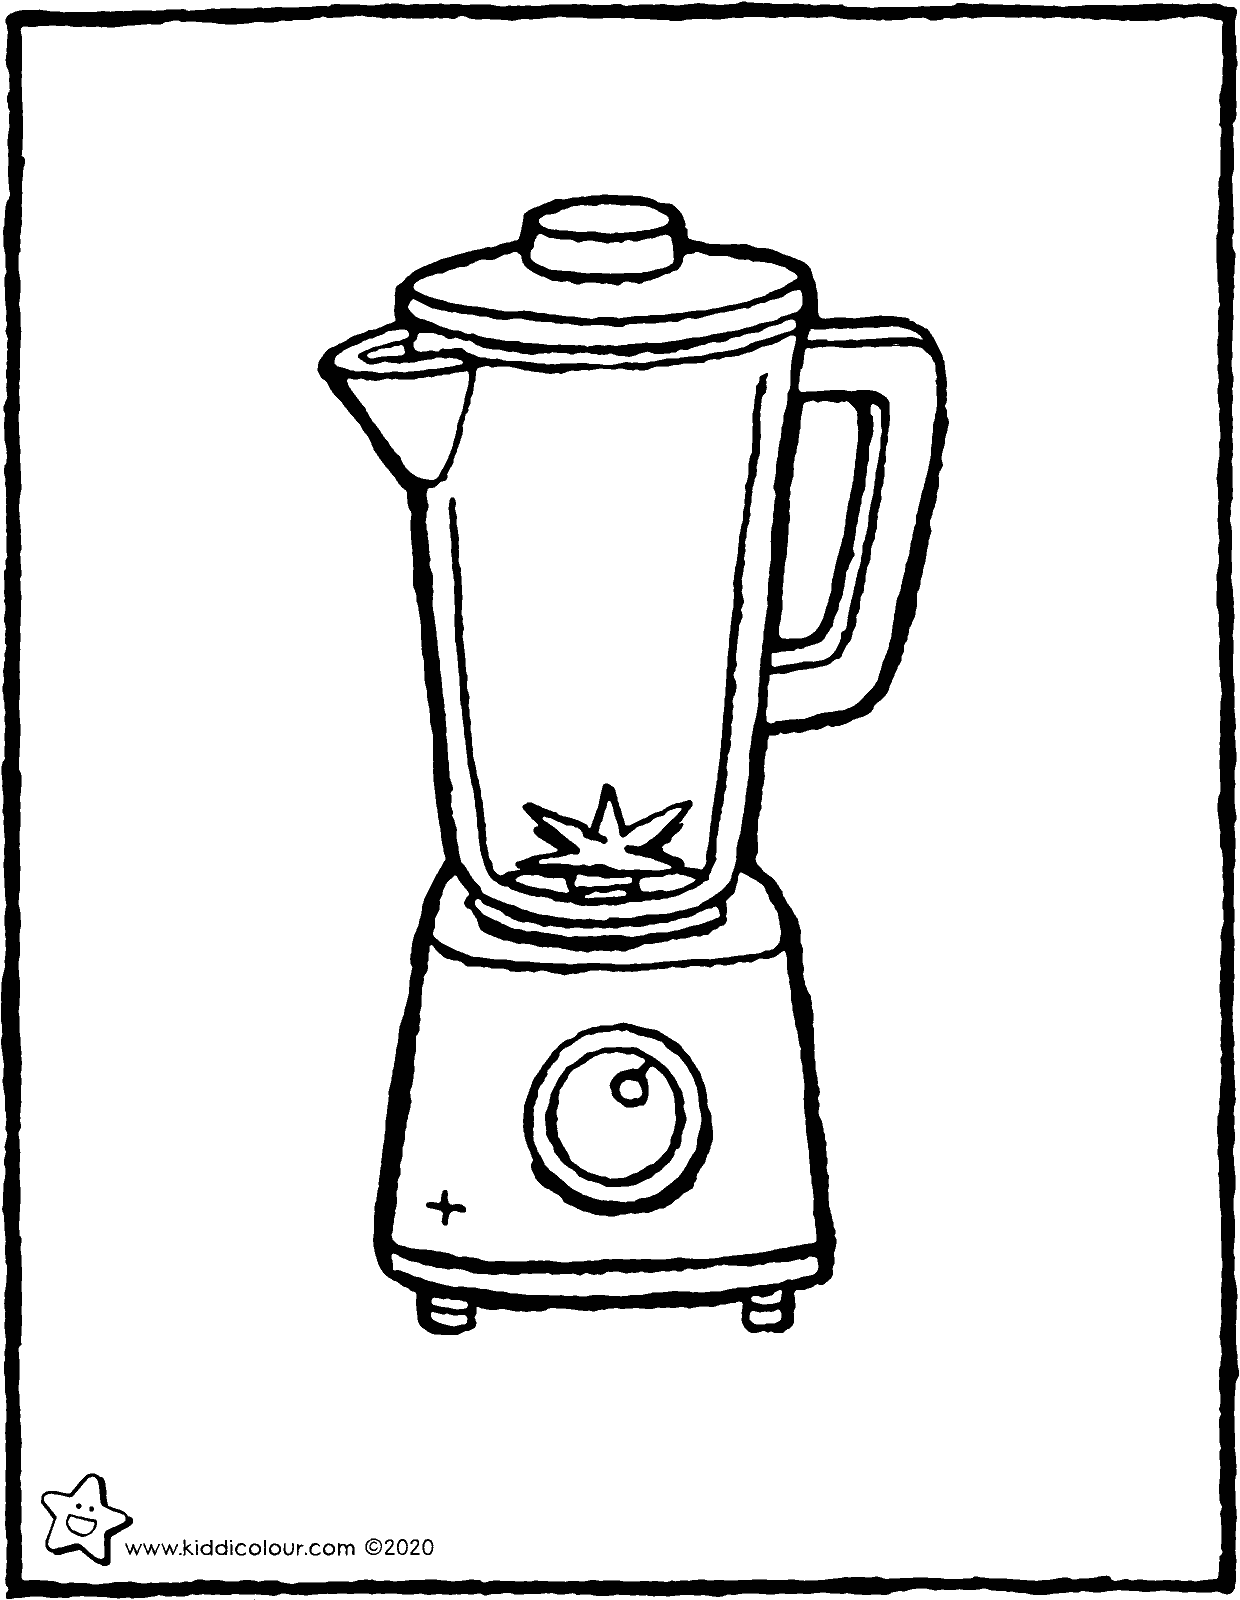 blender colouring page drawing picture 01V